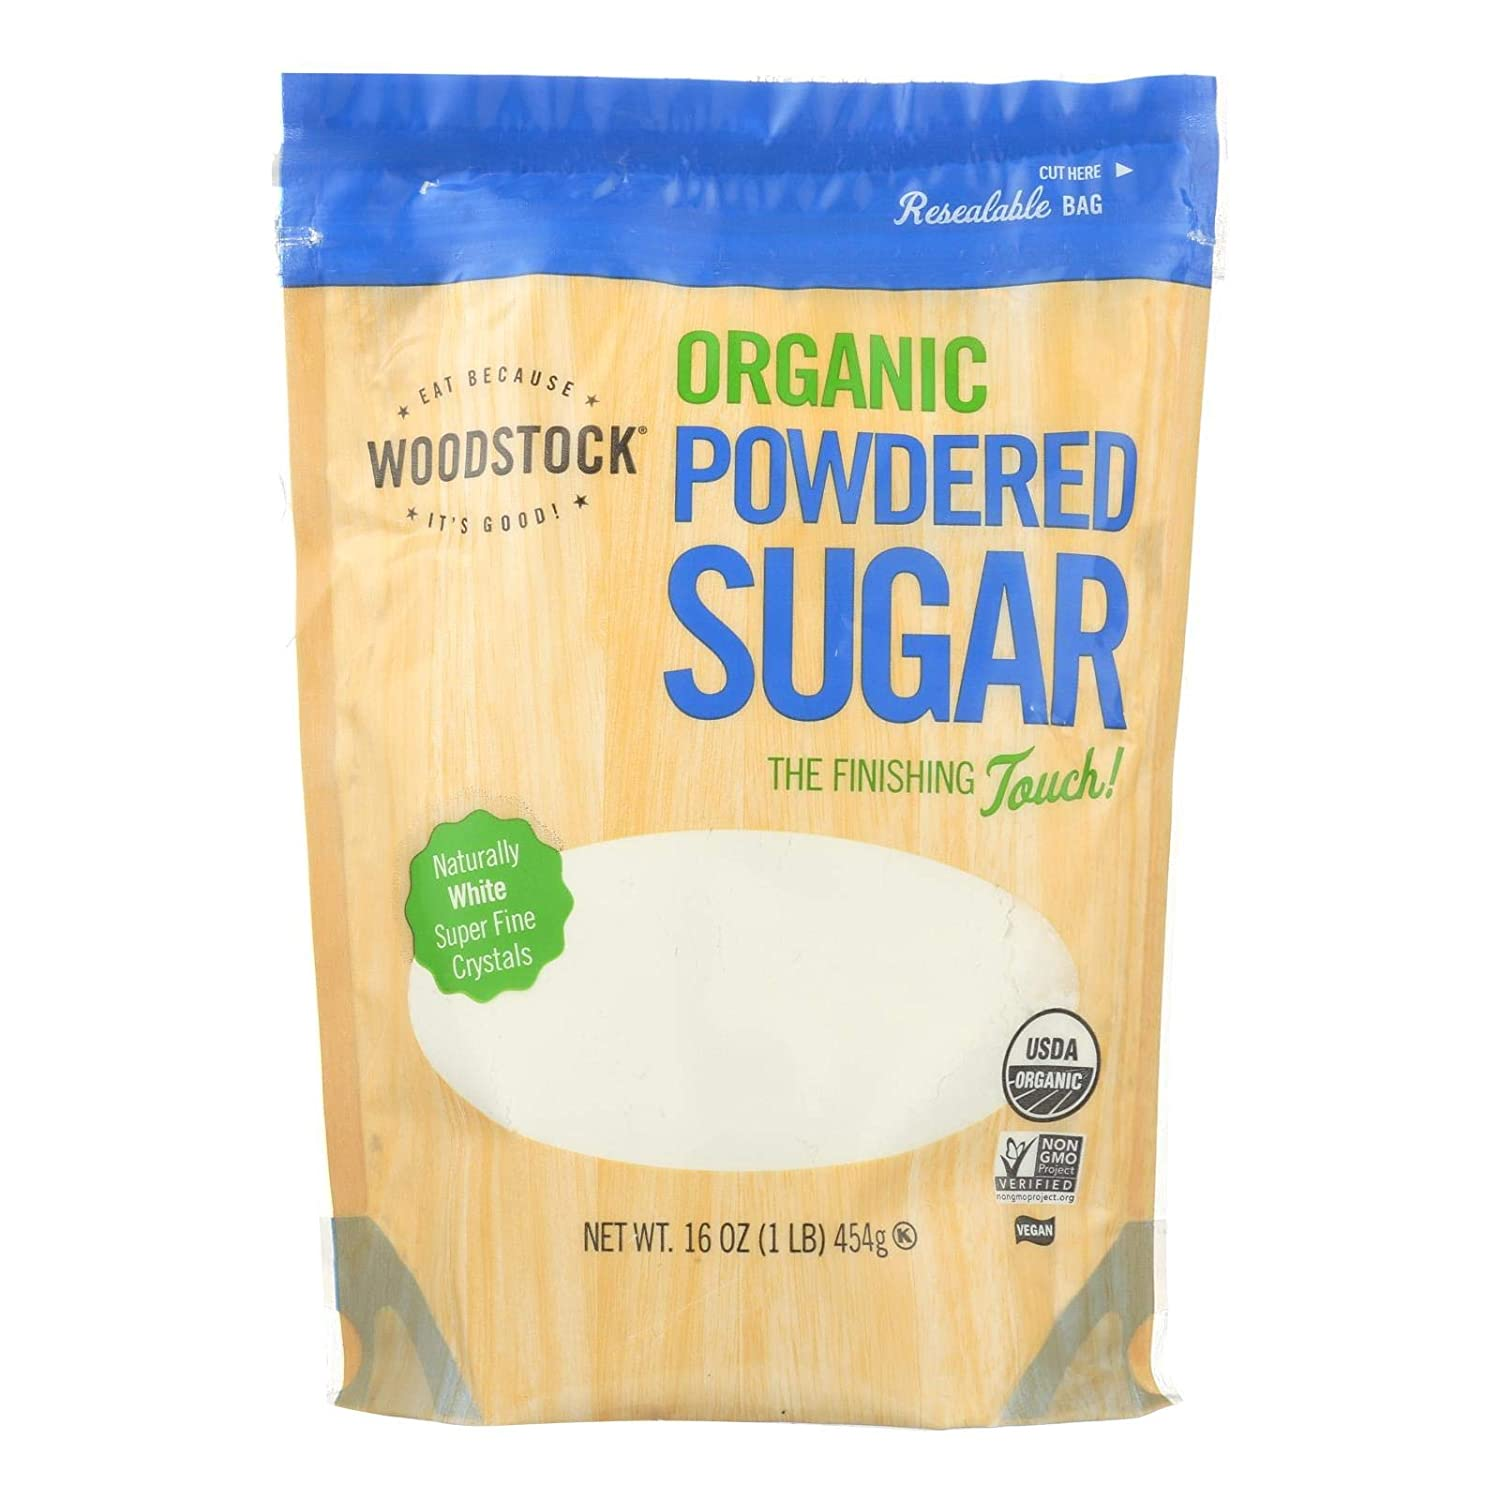 Woodstock Sugar Organic NEW Powdered 6 of 16-Ounce Pack Over item handling